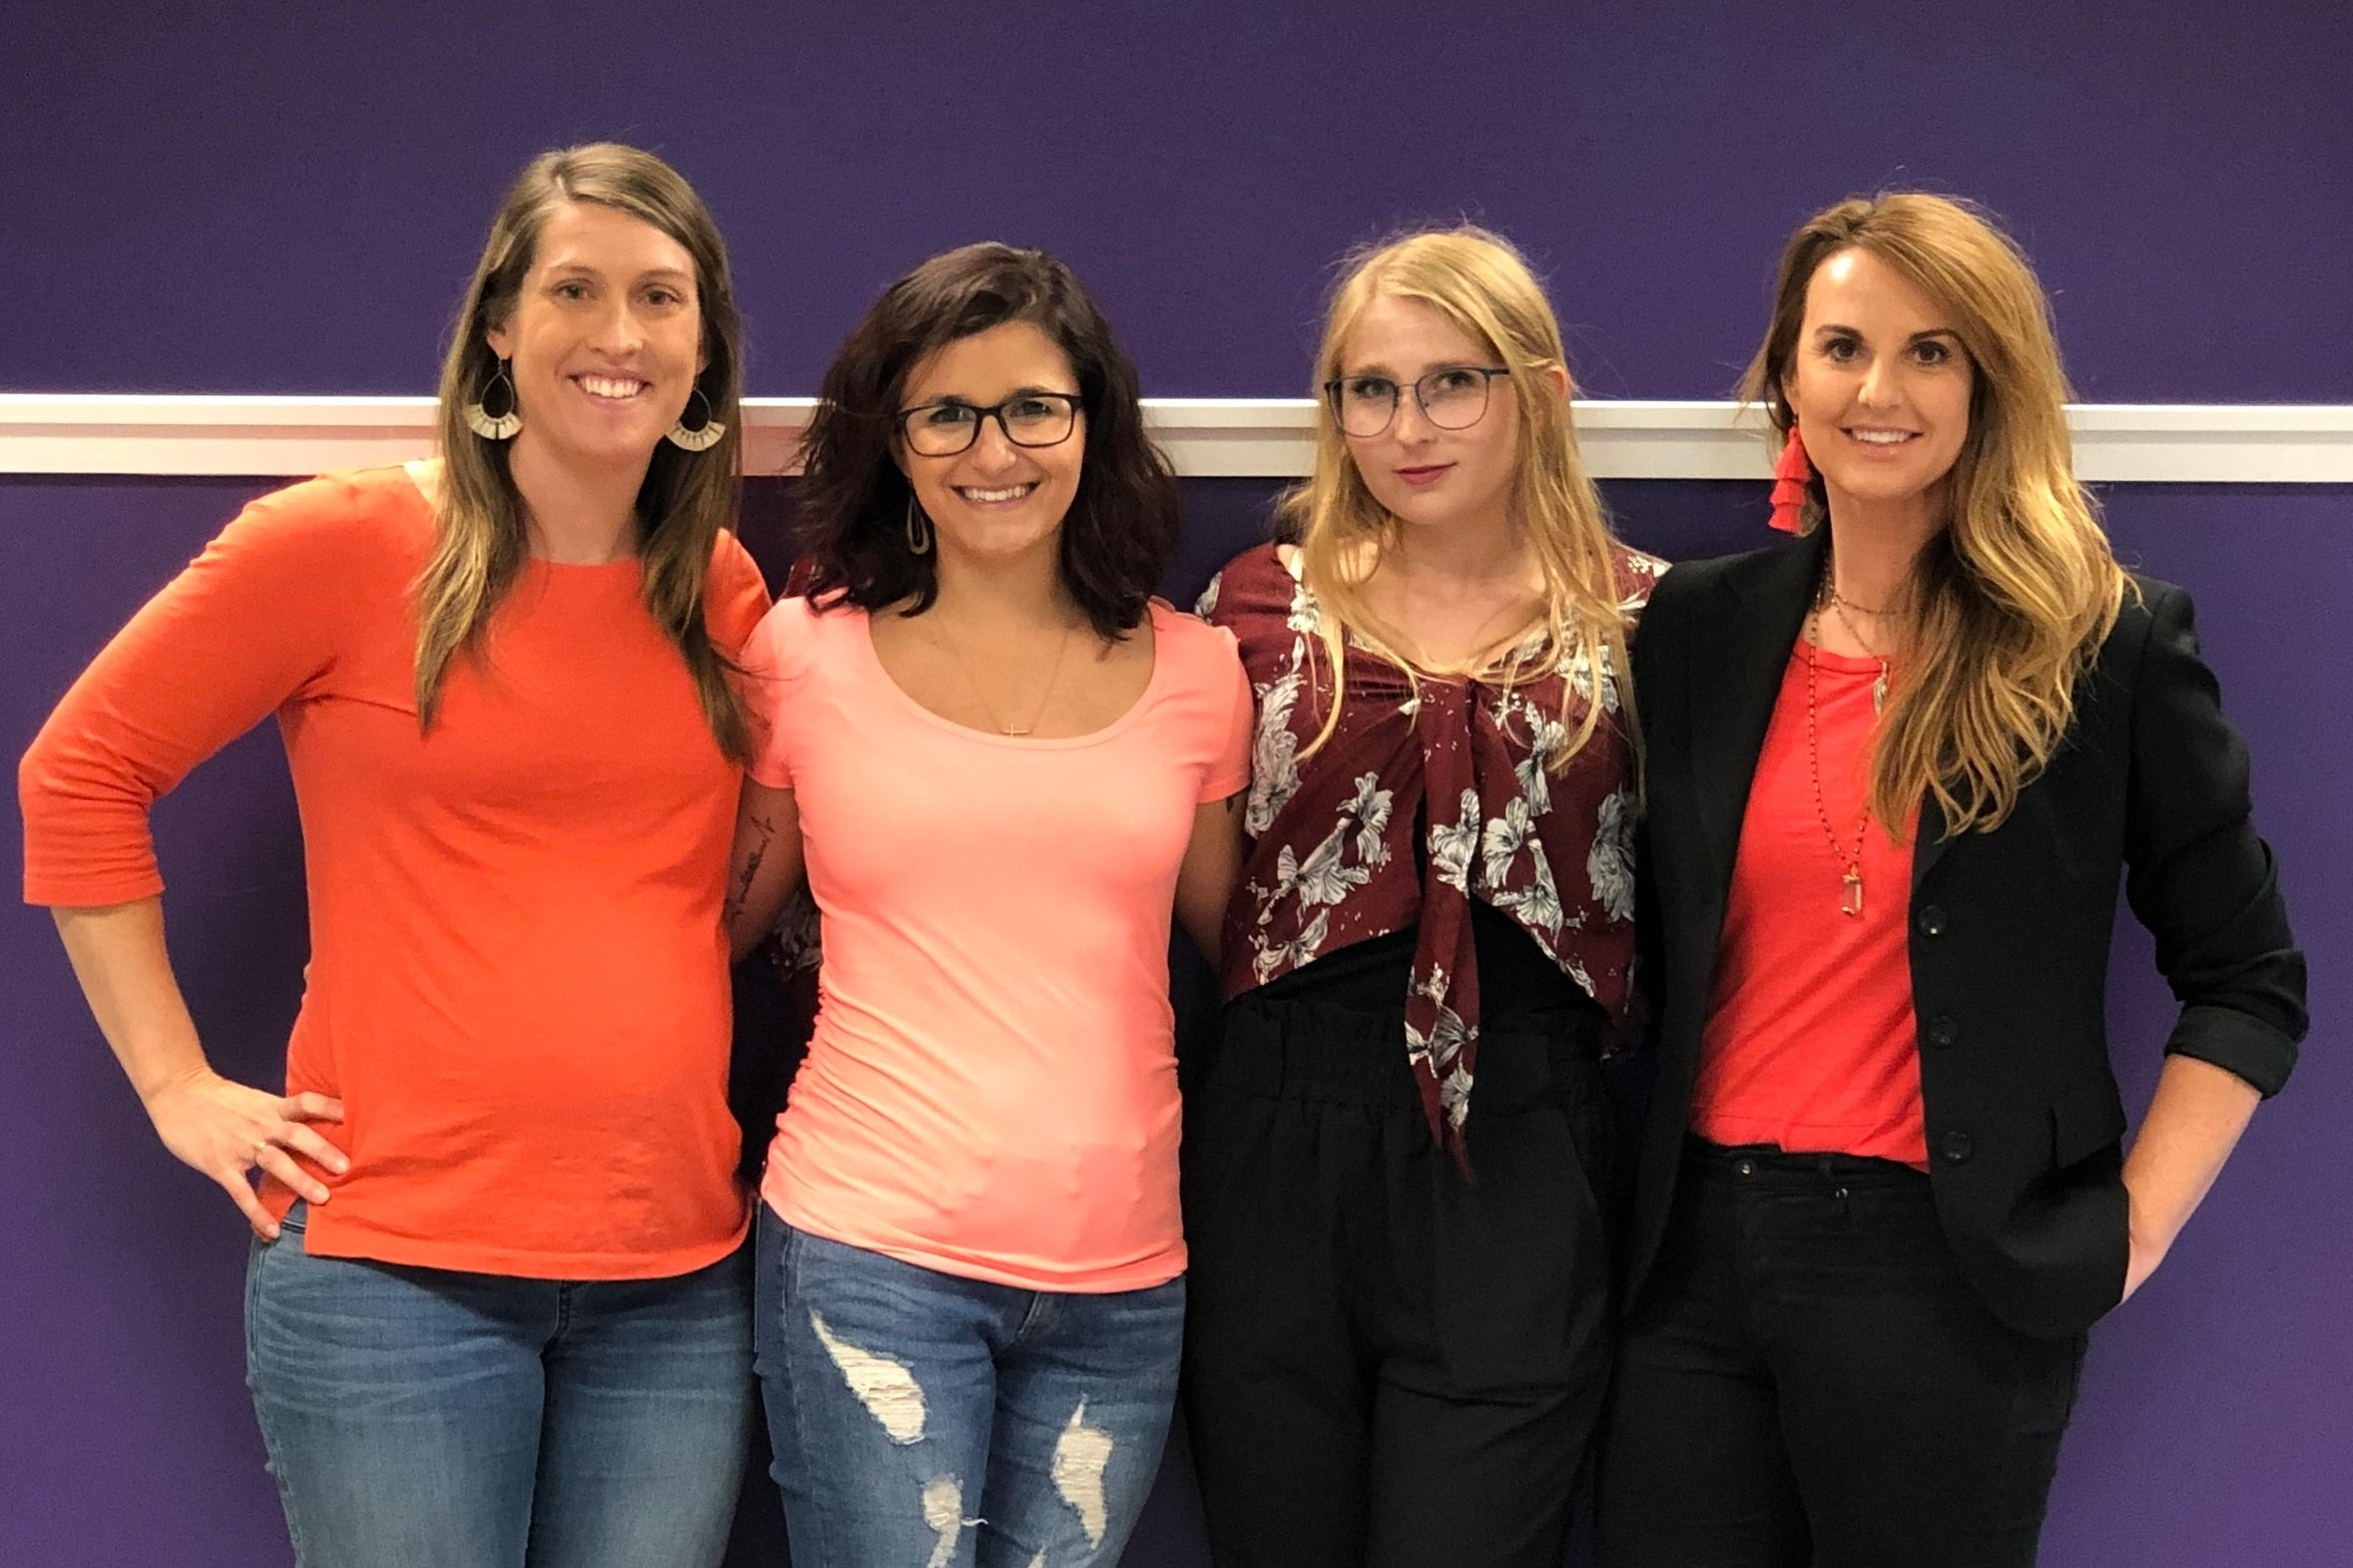 Current and prior military spouses! From left, Melanie, Bre, Sophie, and Kim.